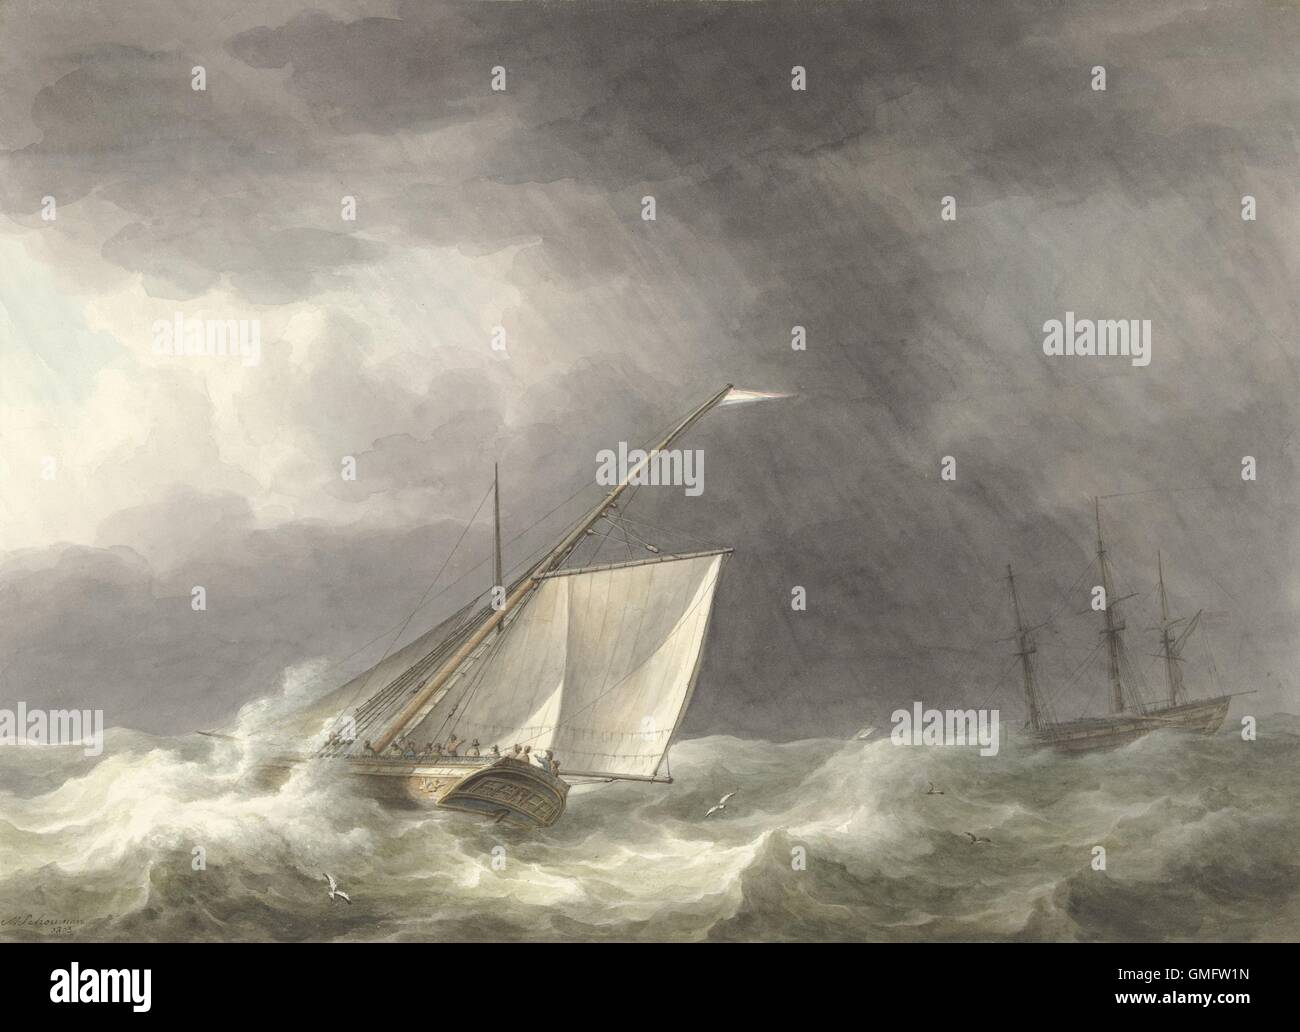 Two Sailing Ships in Rough Seas, by Martinus Schouman, 1803, Dutch watercolor painting. (BSLOC 2016 1 206) Stock Photo